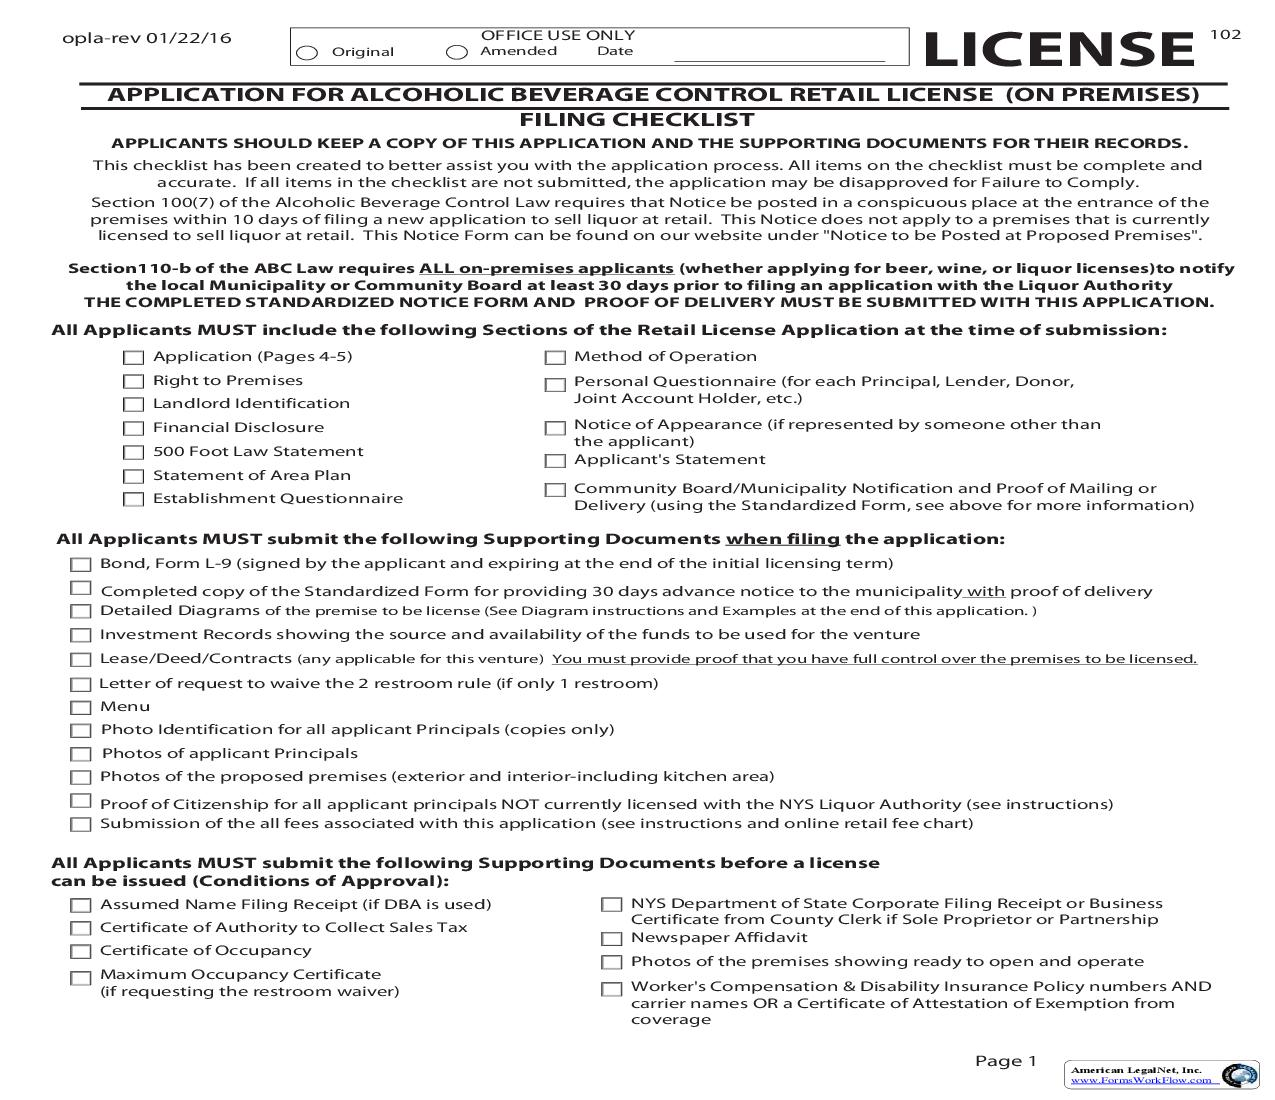 Application For Alcoholic Beverage Control Retail License (On Premises) | Pdf Fpdf Doc Docx | New York